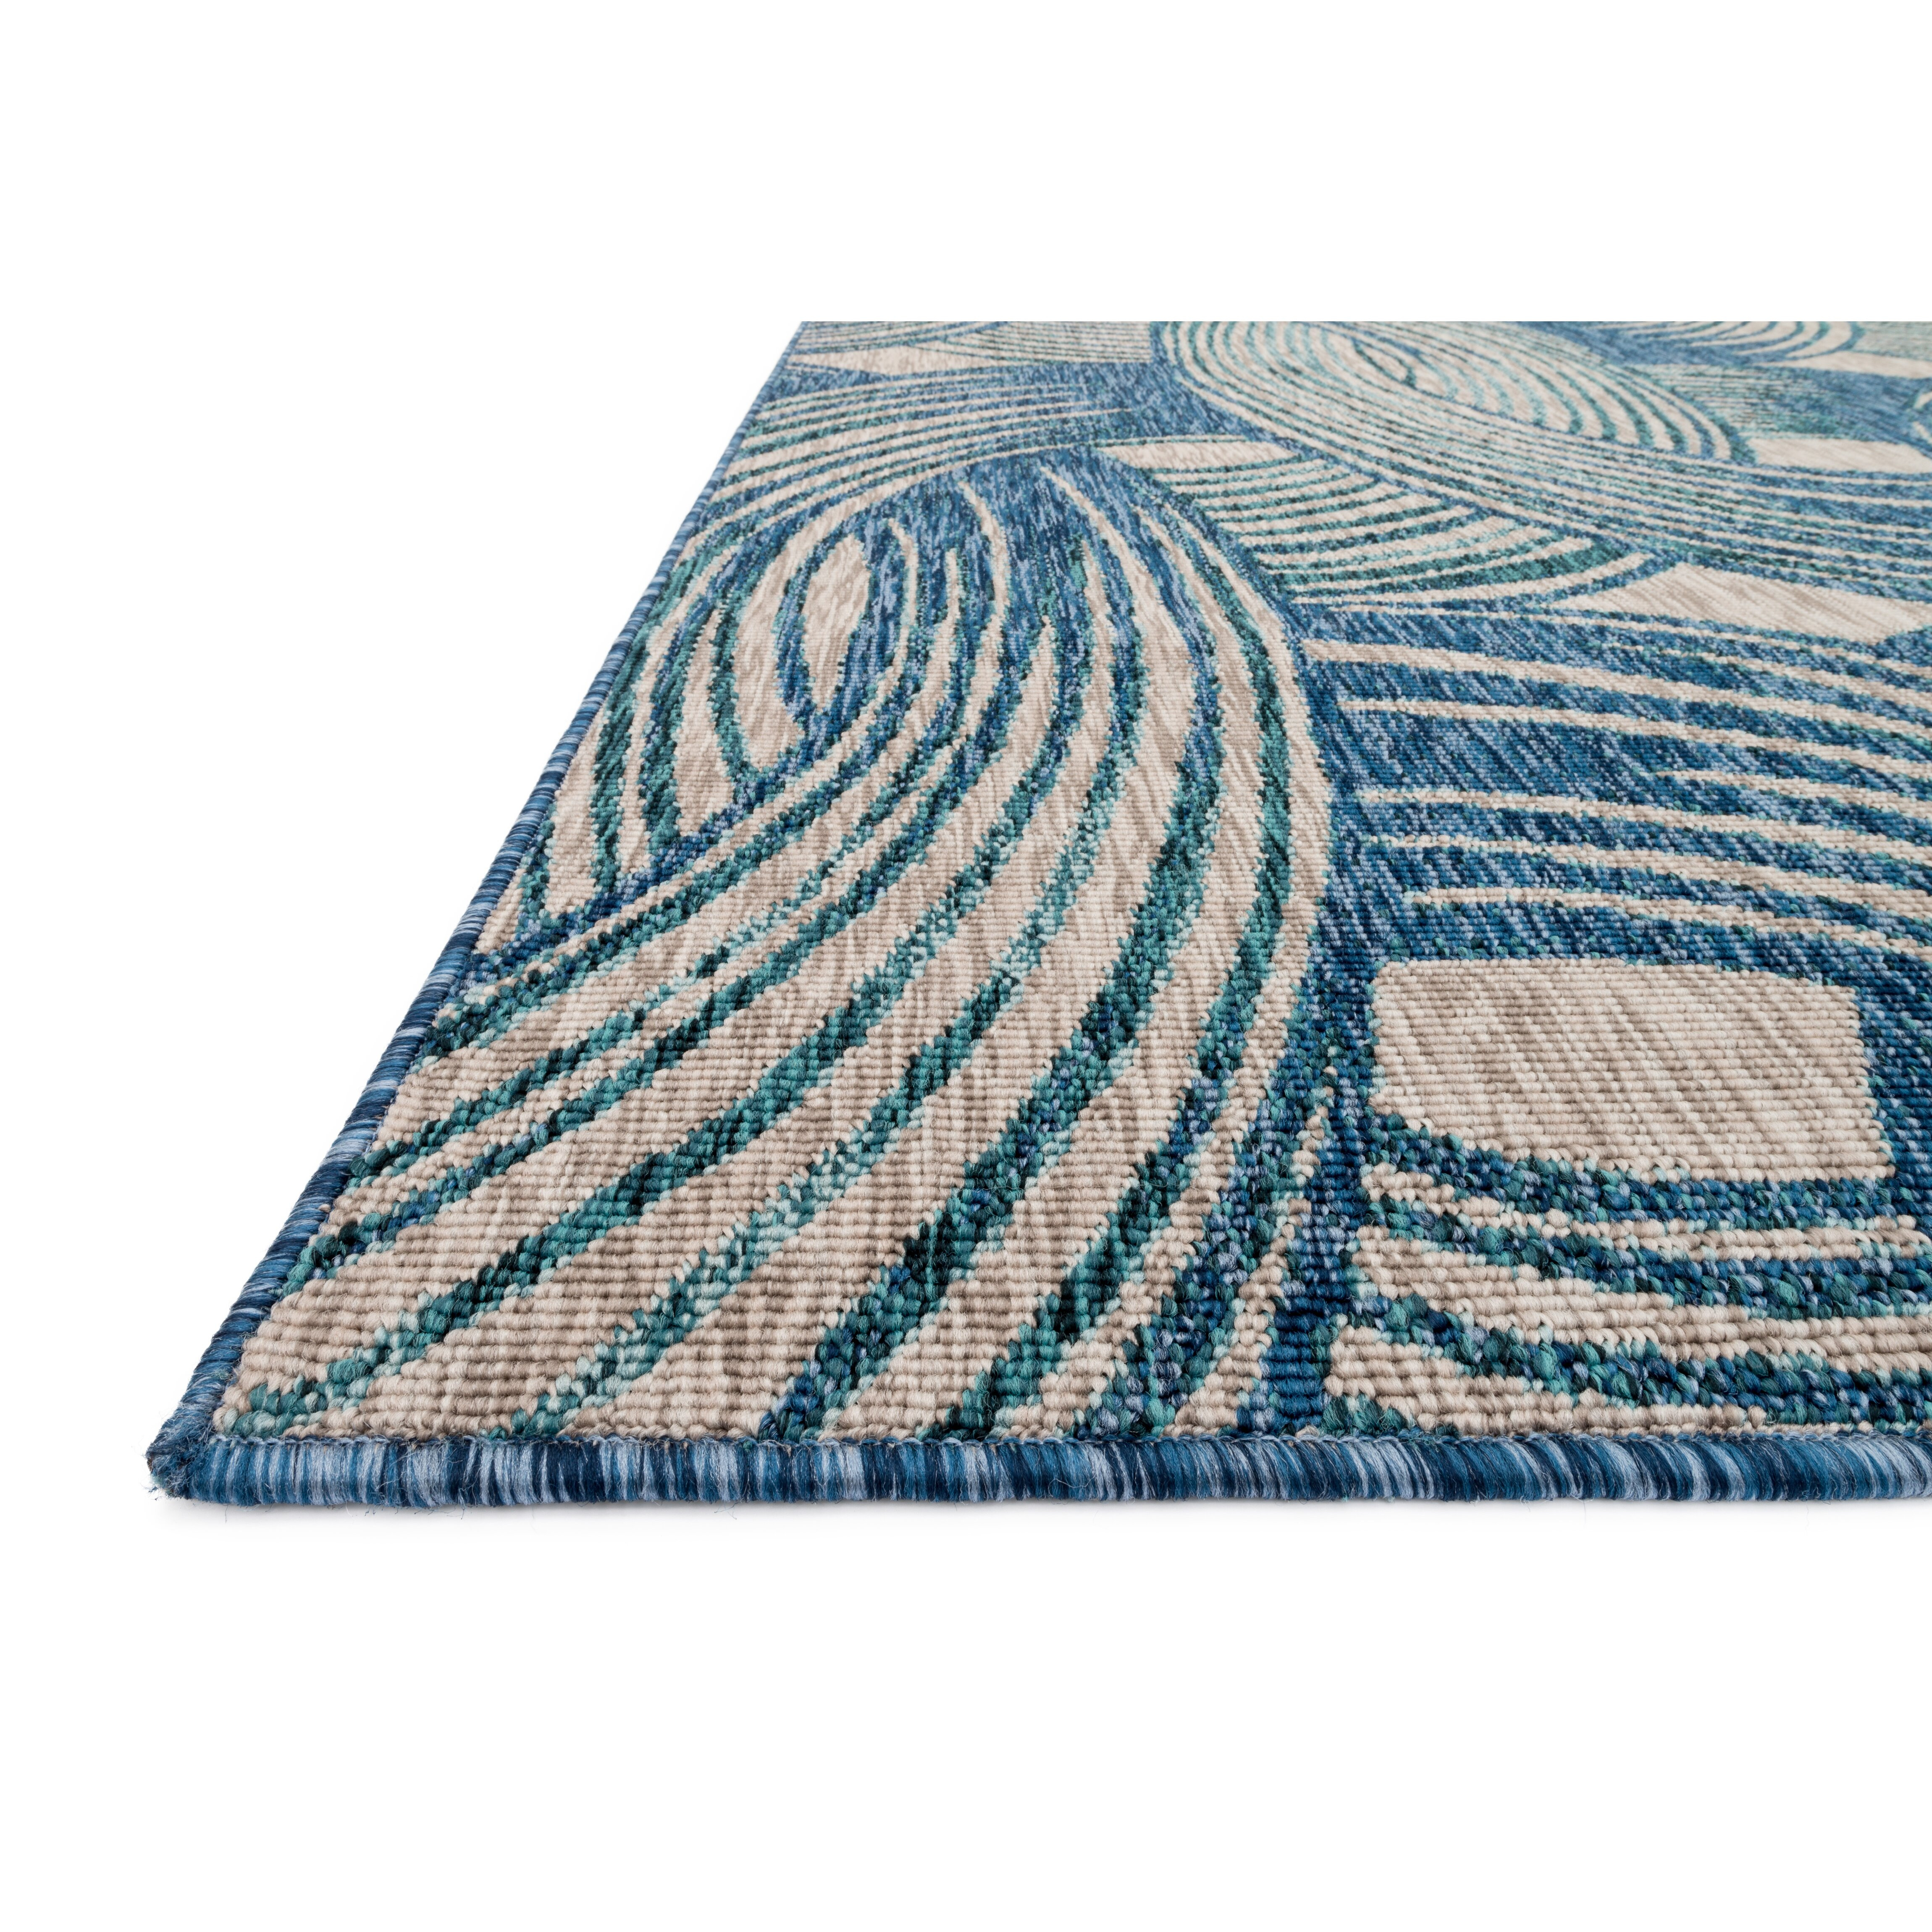 Loloi Rugs Newport Blue/Teal Area Rug